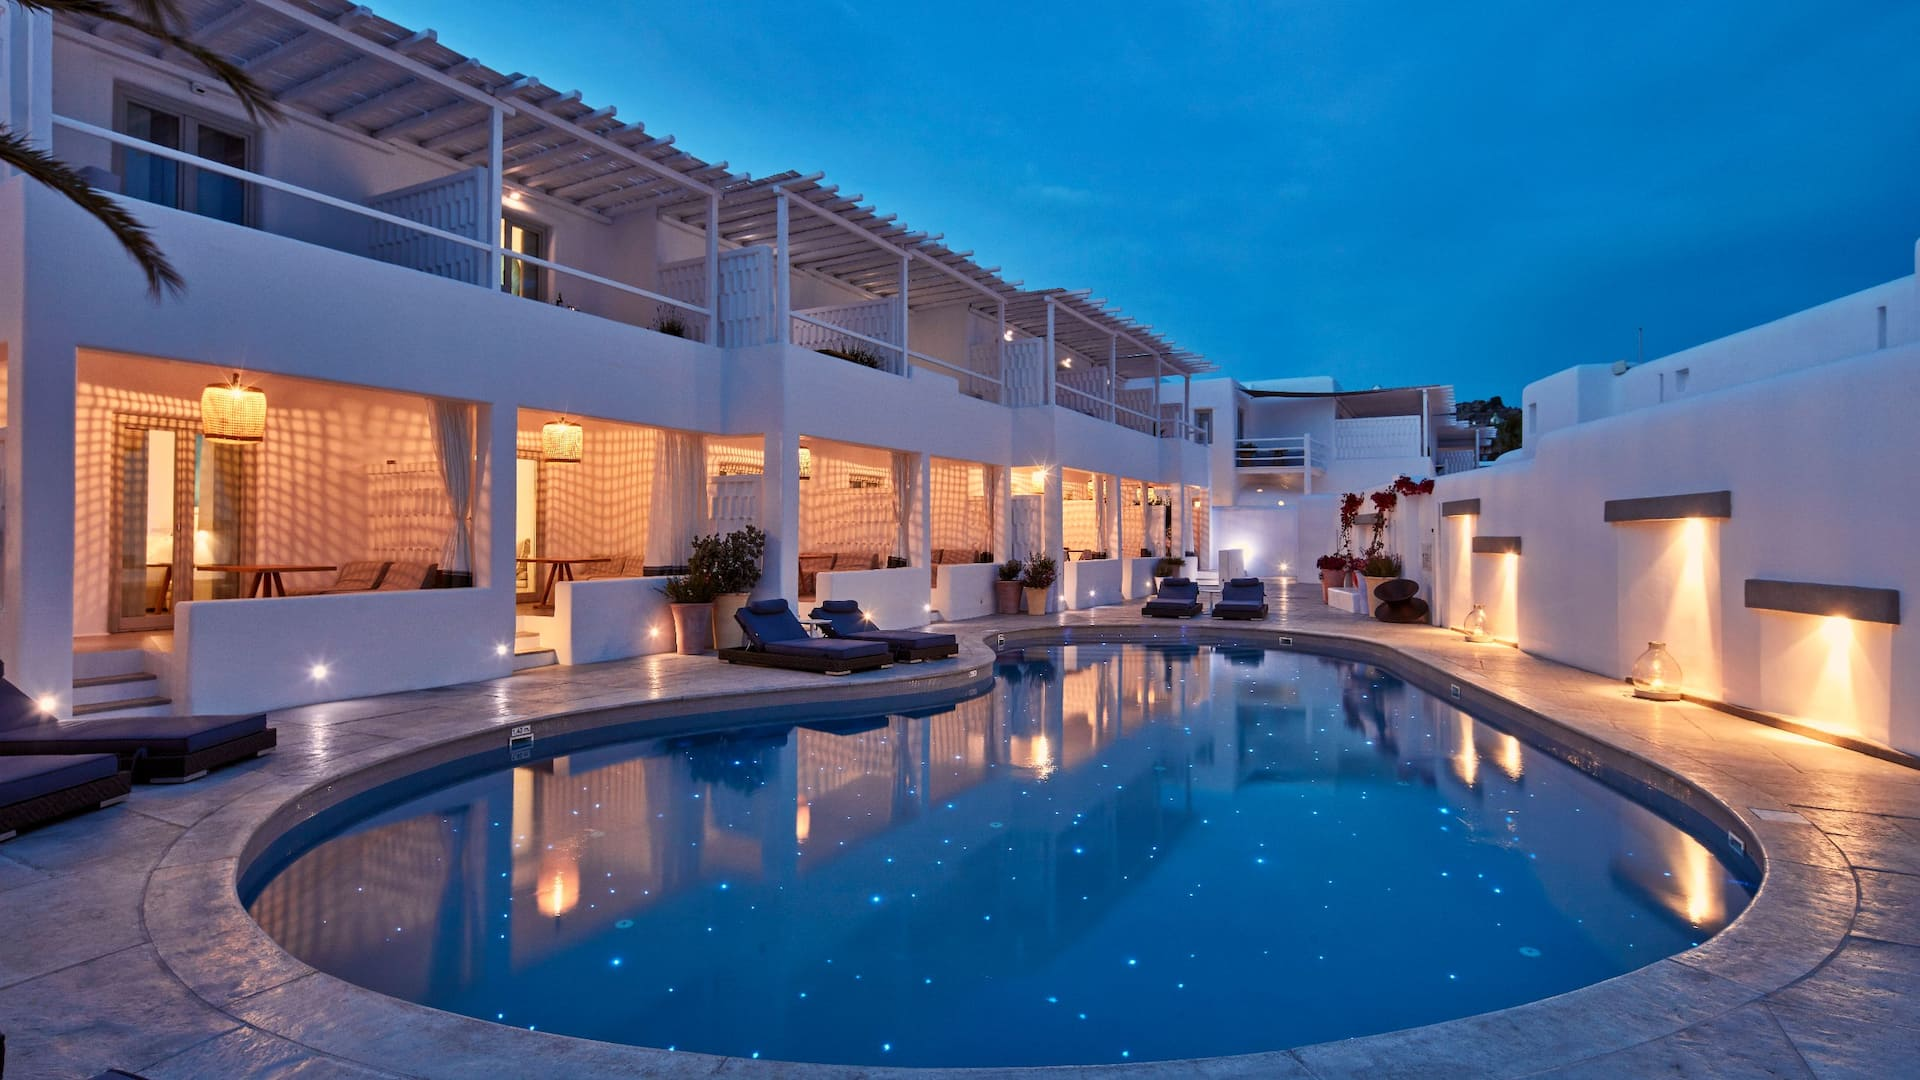 Ammos Mykonos pool at night